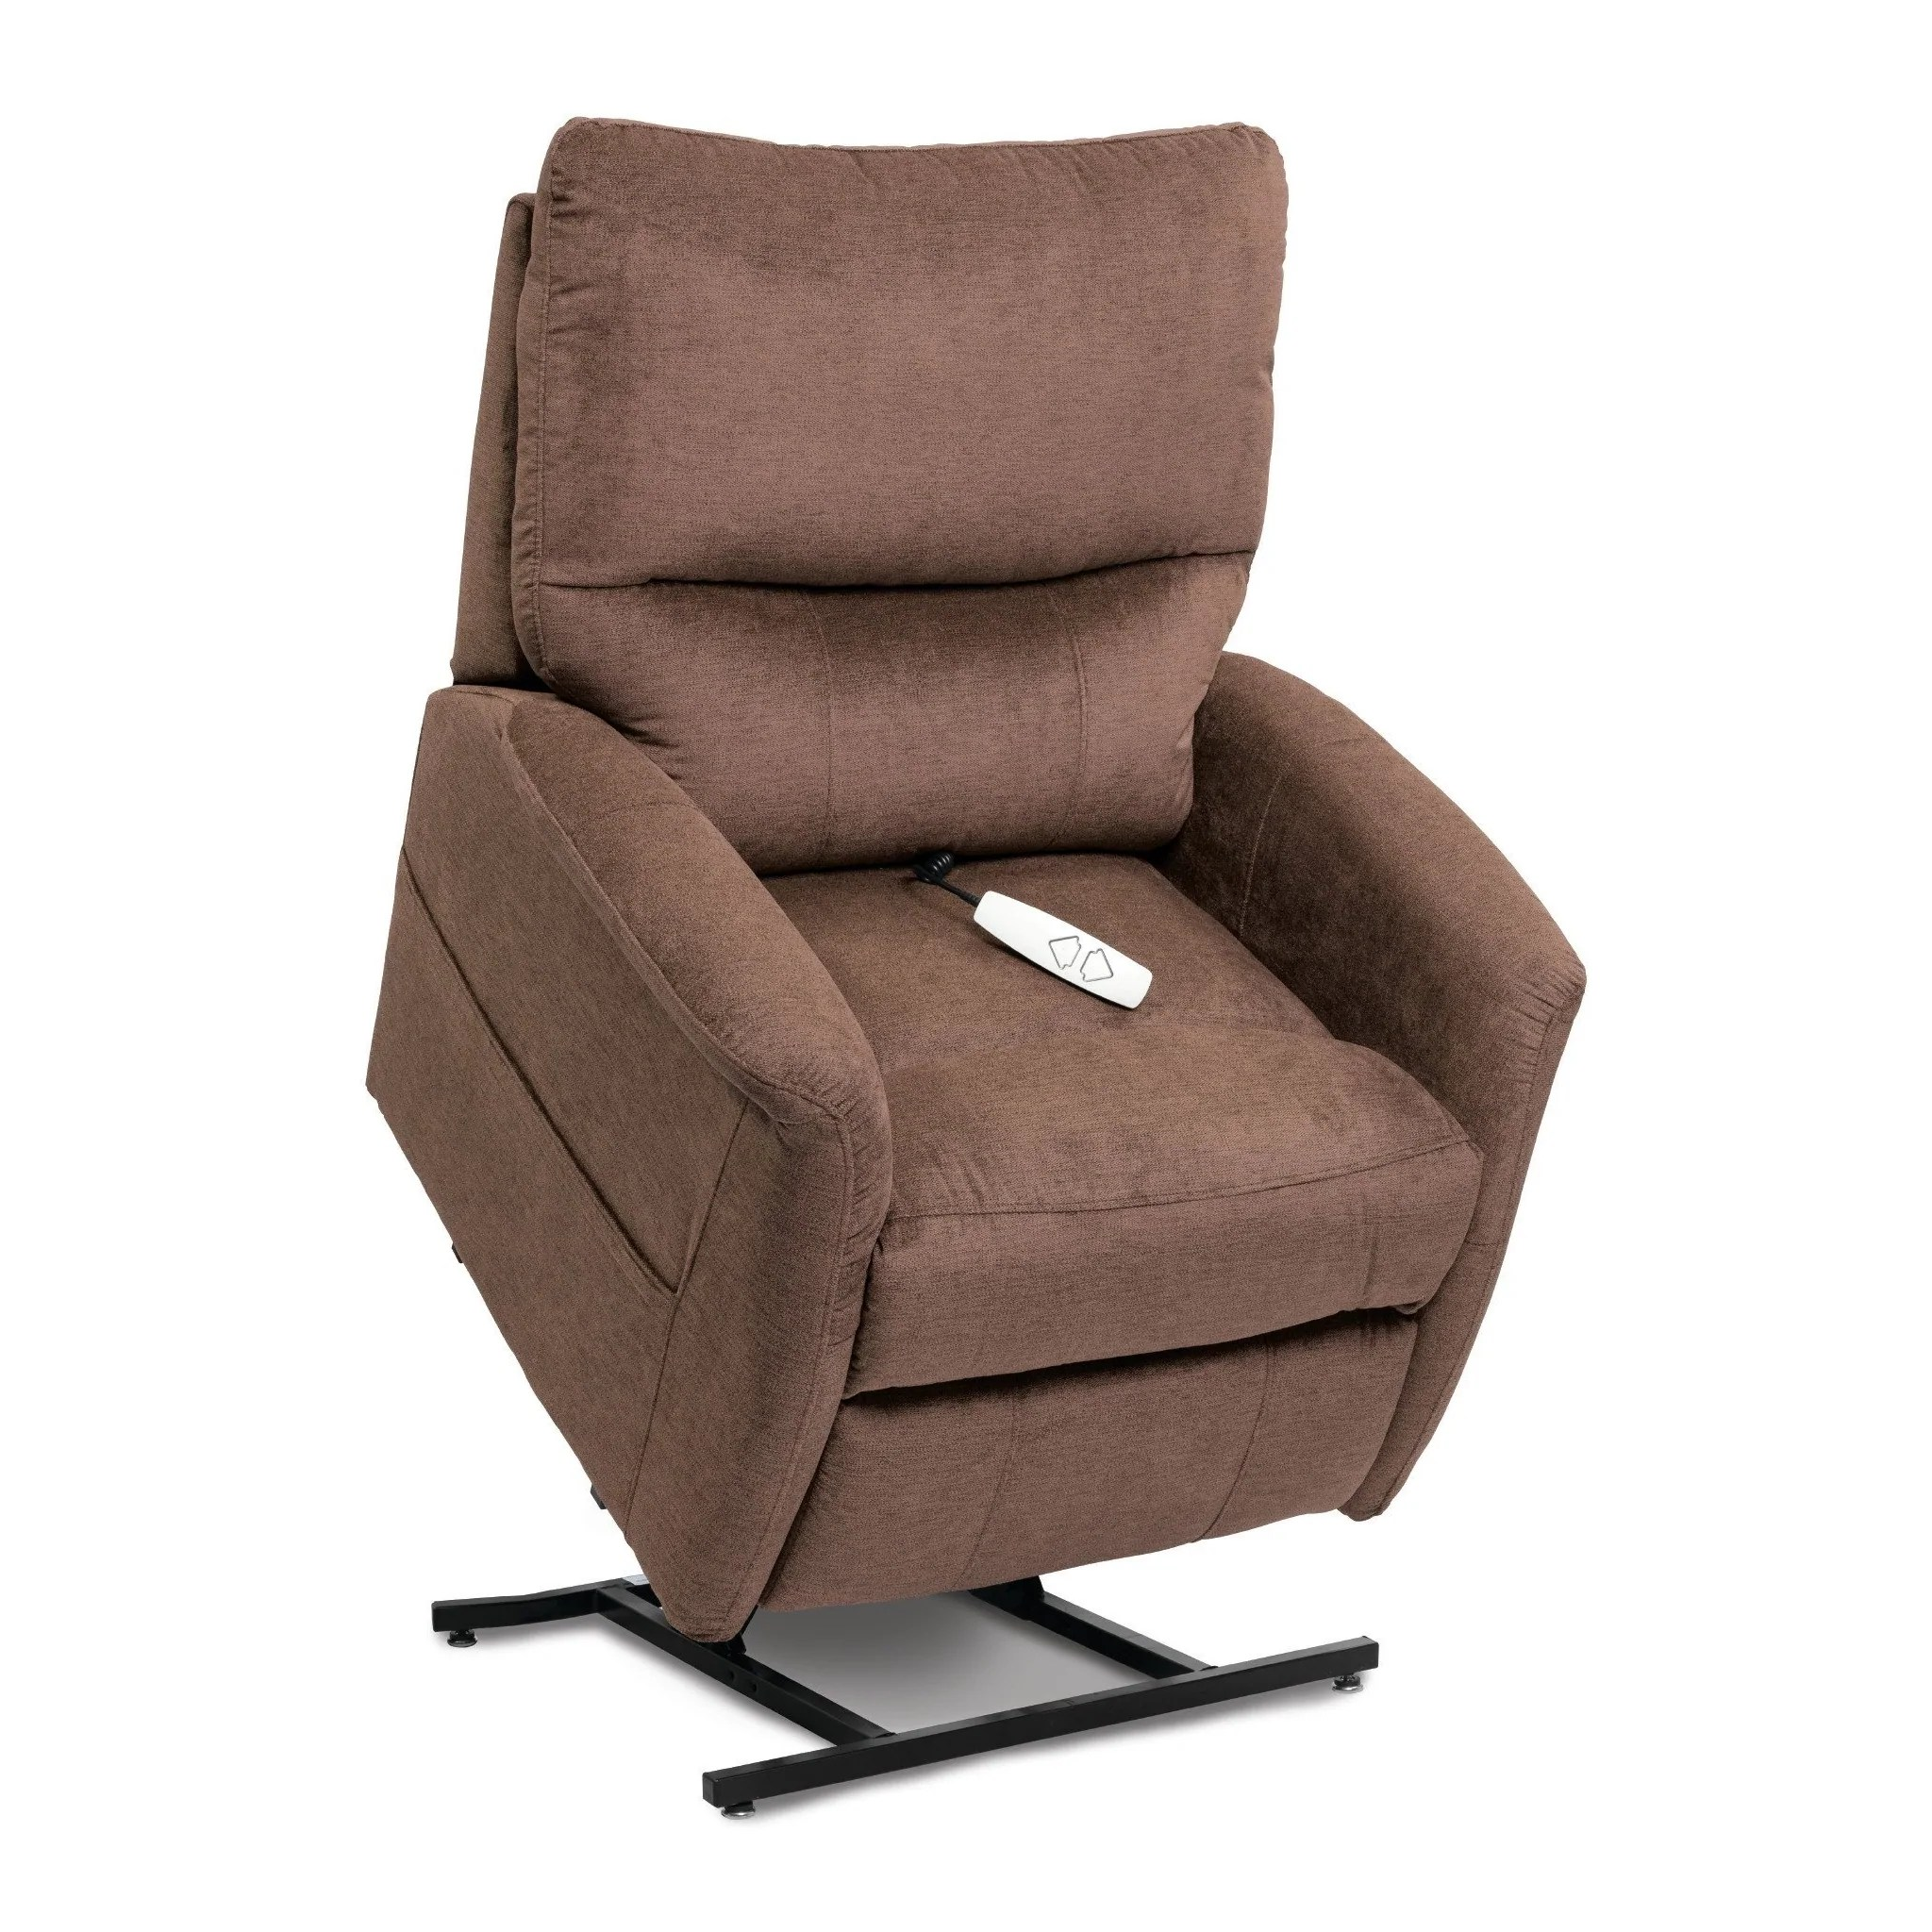 mega motion lift chair customer service louis ghost nm3250 three position java freedom chairs